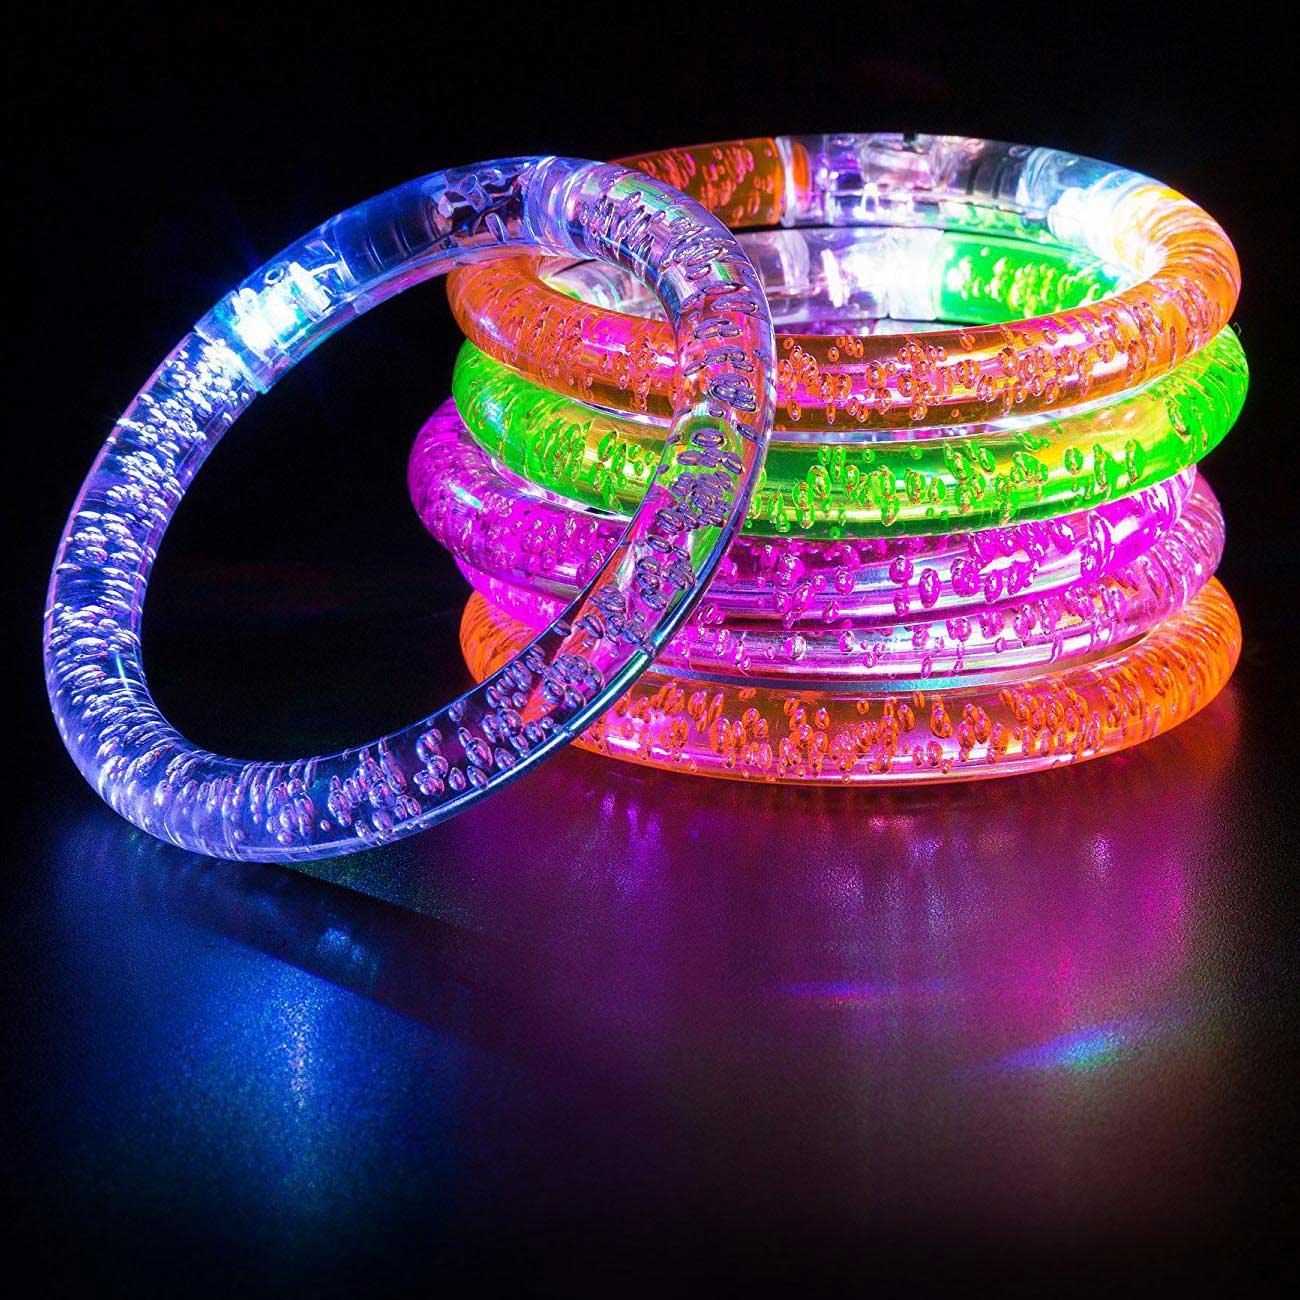 Light-Up Glow Multi-Color LED Flashing Acrylic Bubble Bangle Rave Party Bracelet